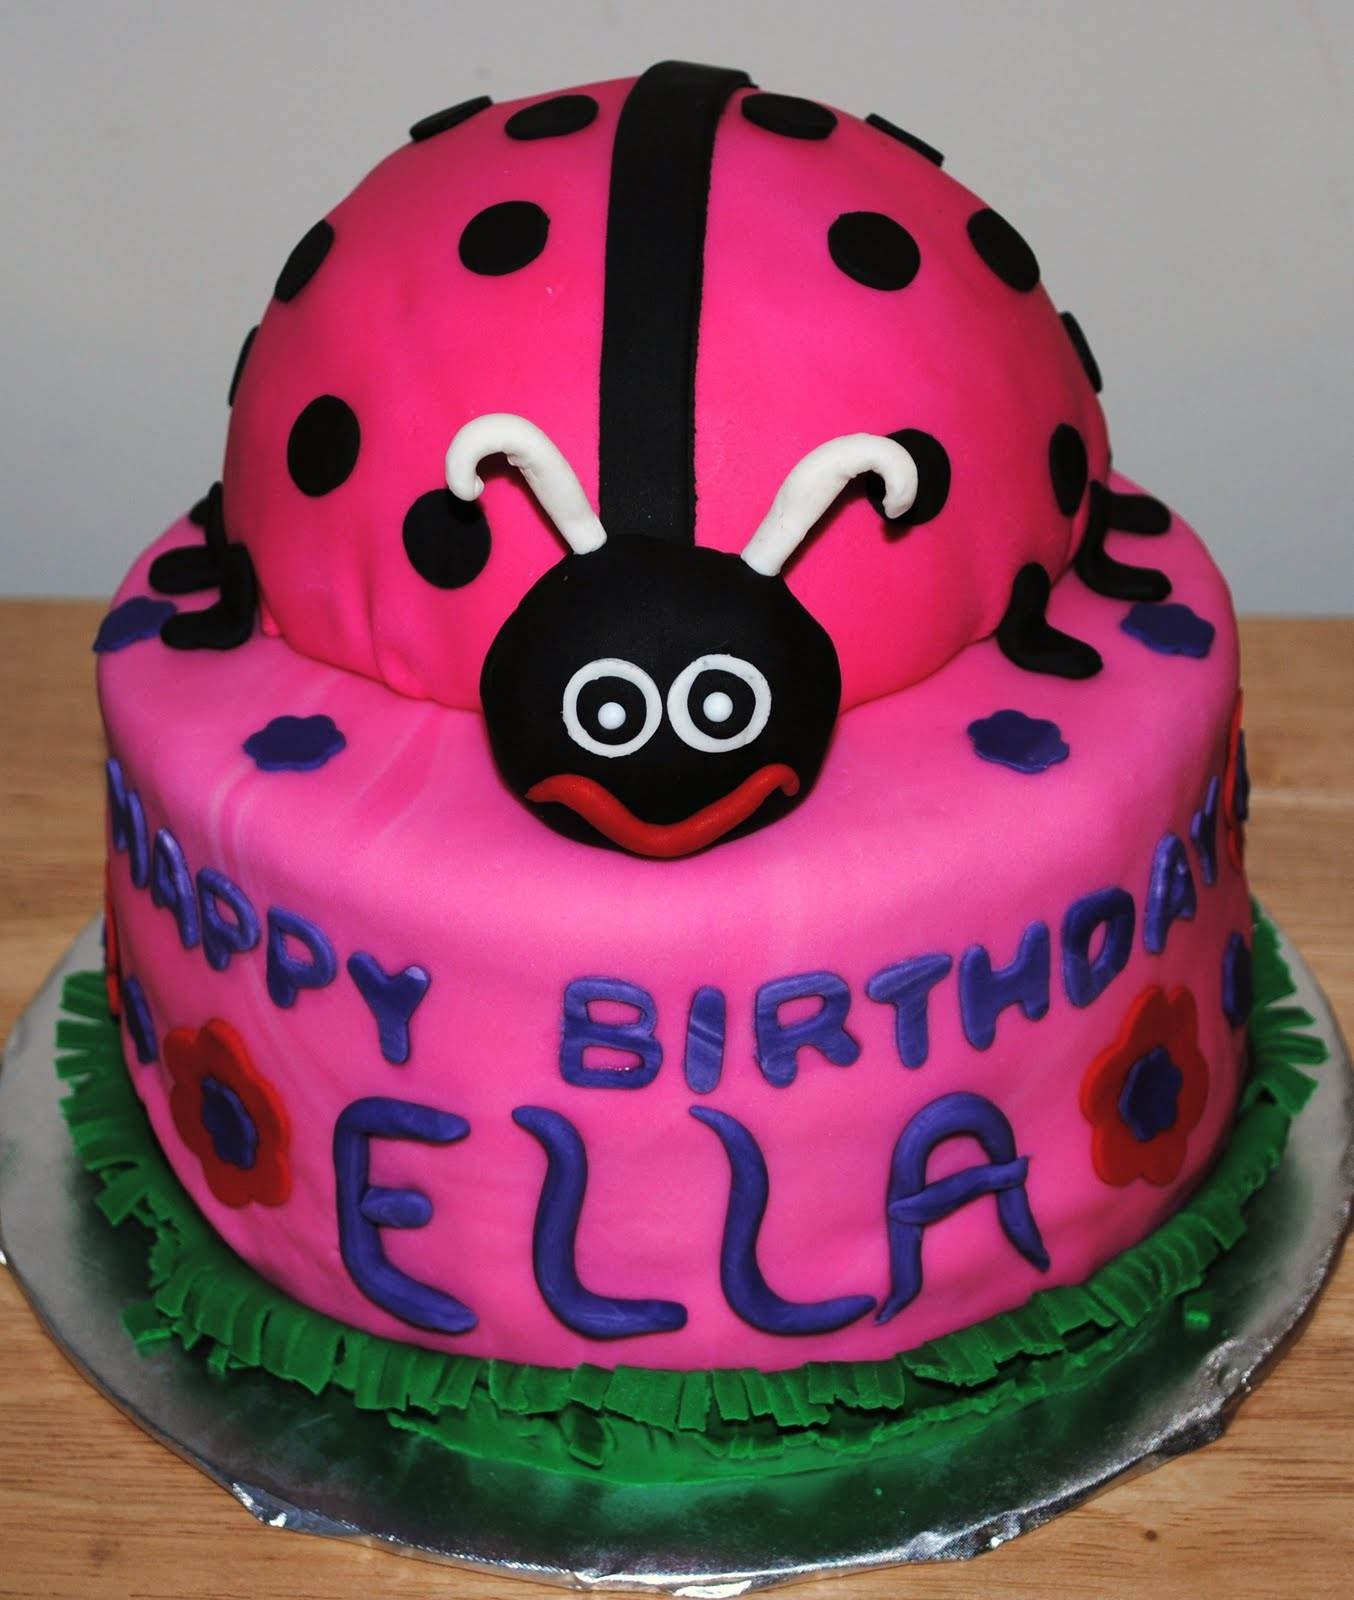 Ellas birthday she had a ladybug party. The lady bug was yellow cake ...